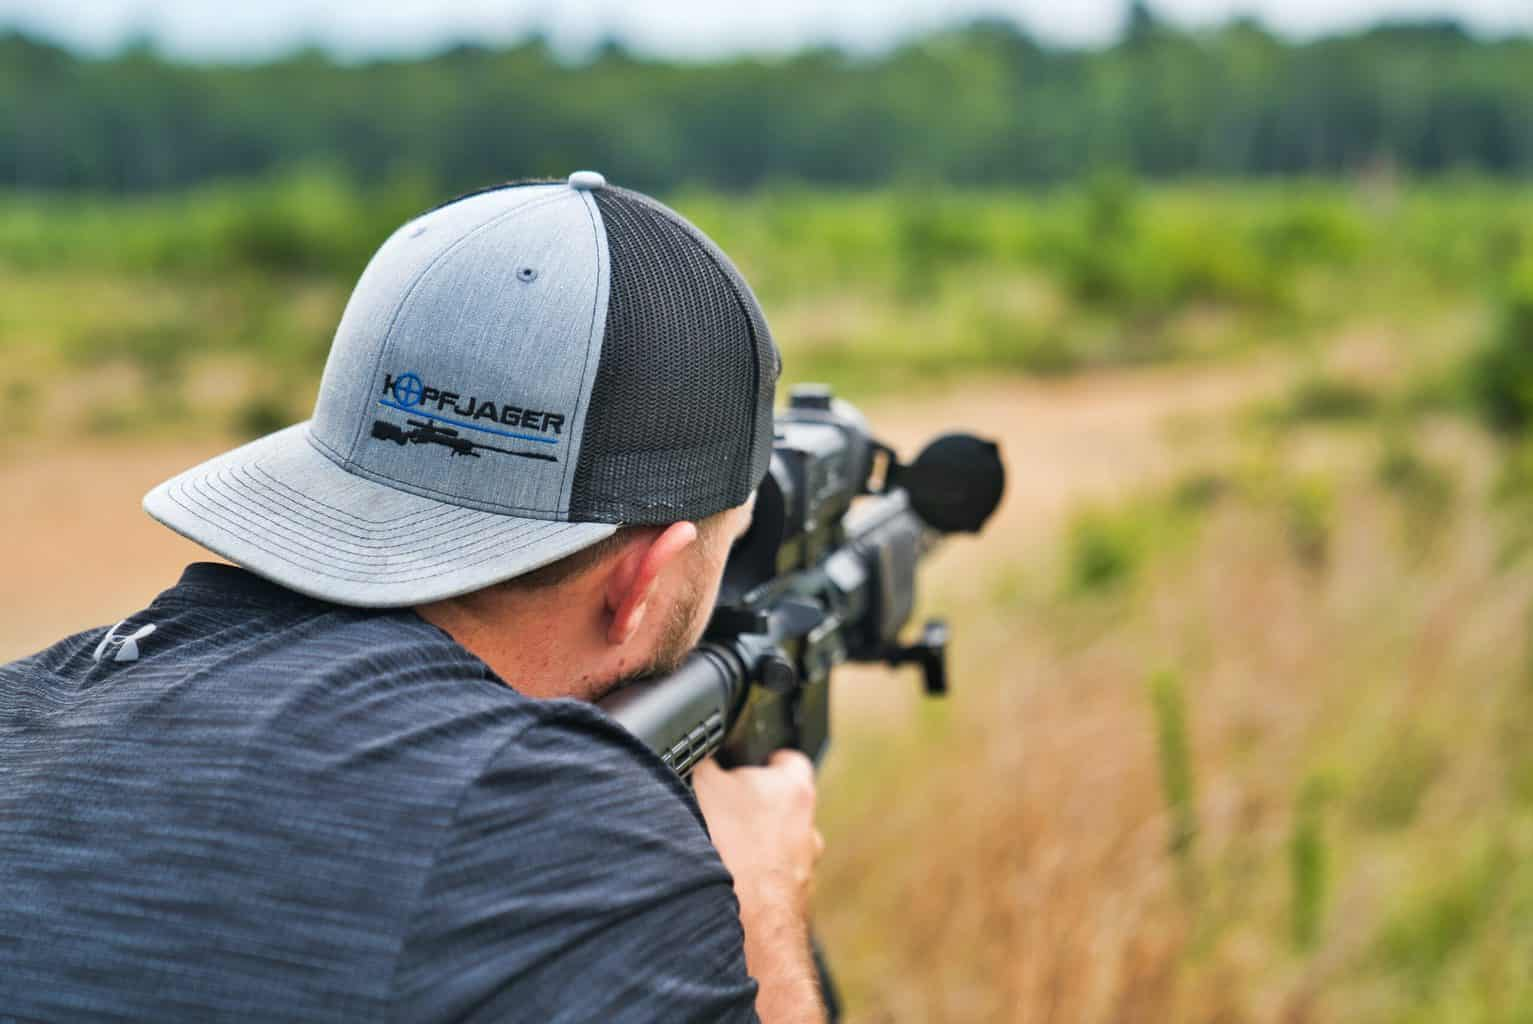 person wearing hat shooting in an open area